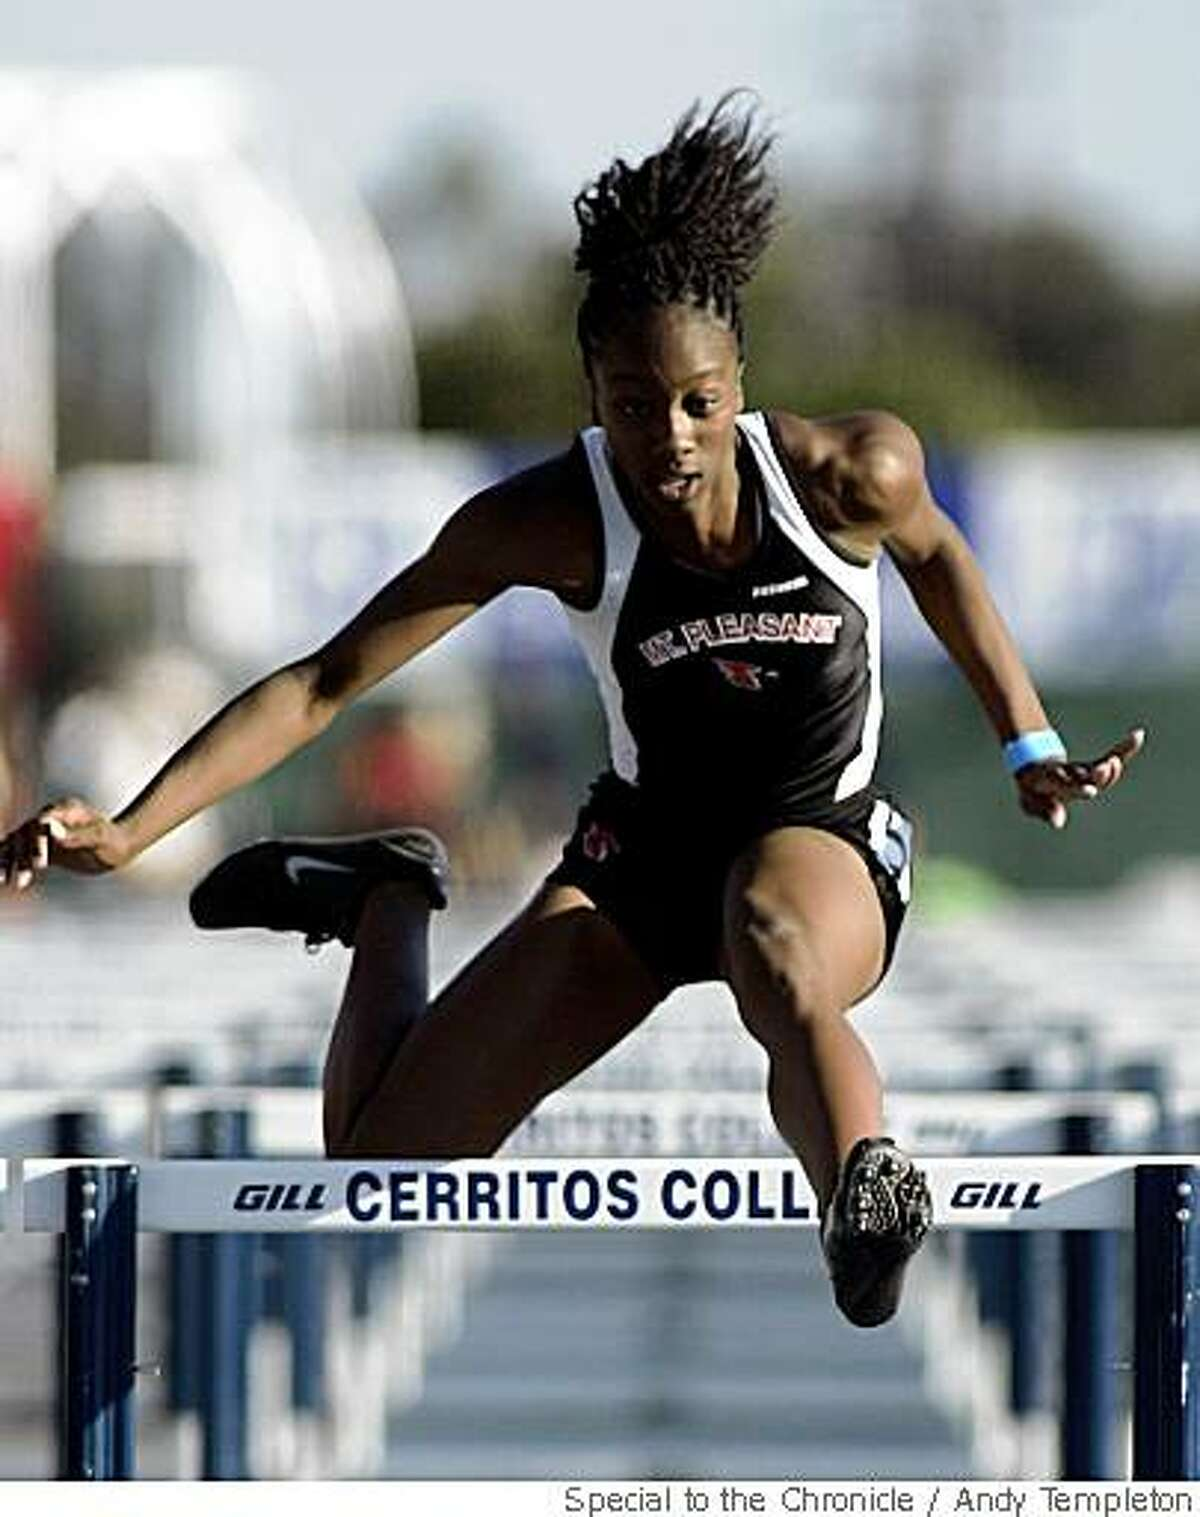 Vashti Thomas qualifies in the Girls 100m High Hurdles during CIF Track and Field qualifying Friday, May 30, in Norwalk, Calif.